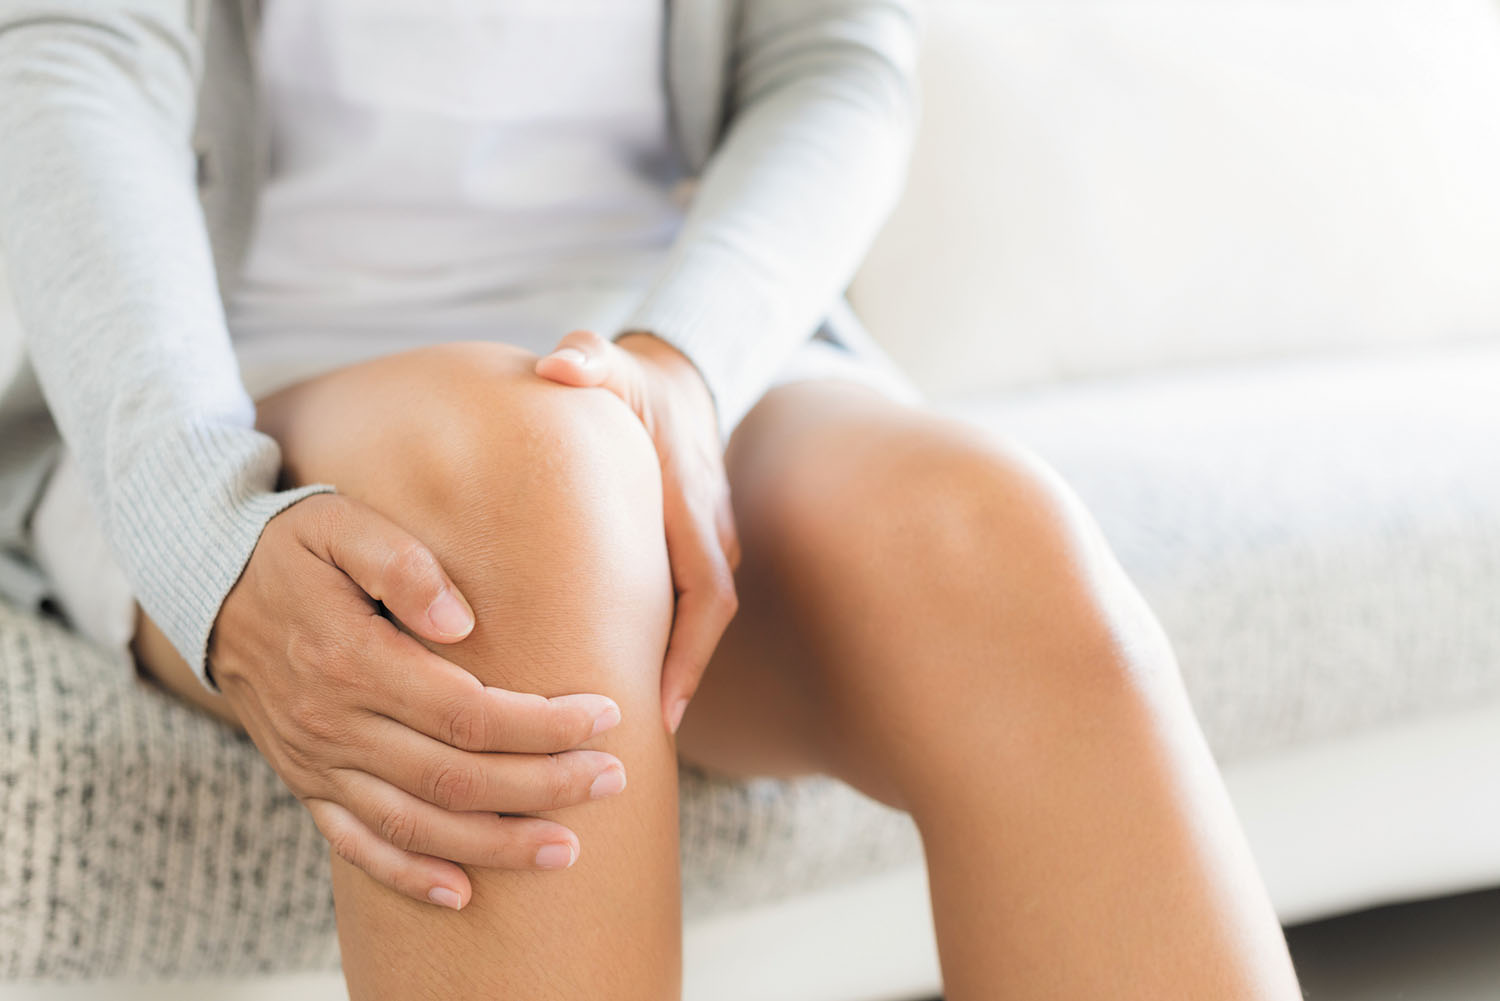 pain limiting woman's activity